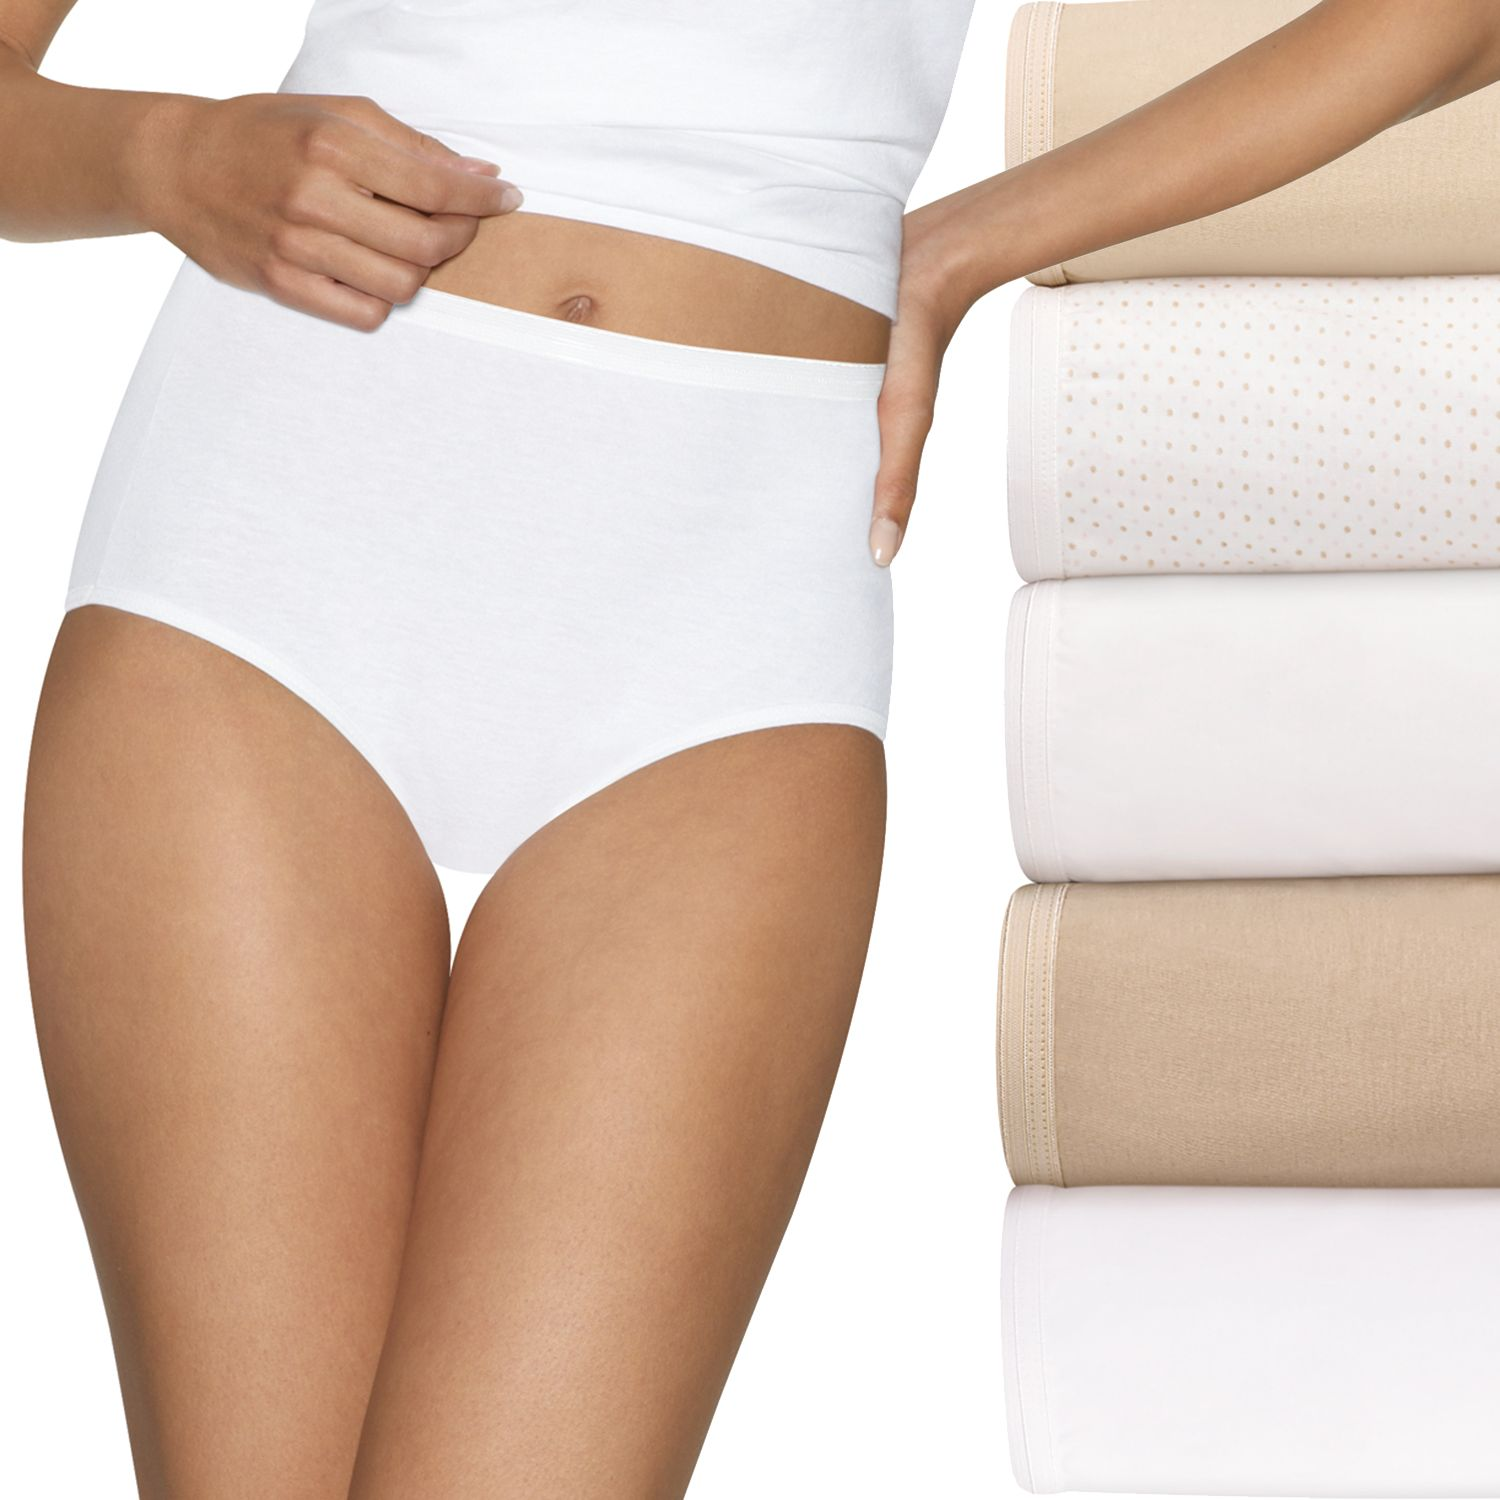 3071123_White_Soft_Taupe_Pack?wid=240&hei=240&op_sharpen=1 womens cotton panties underwear, clothing kohl's,Womens Underwear Kohls